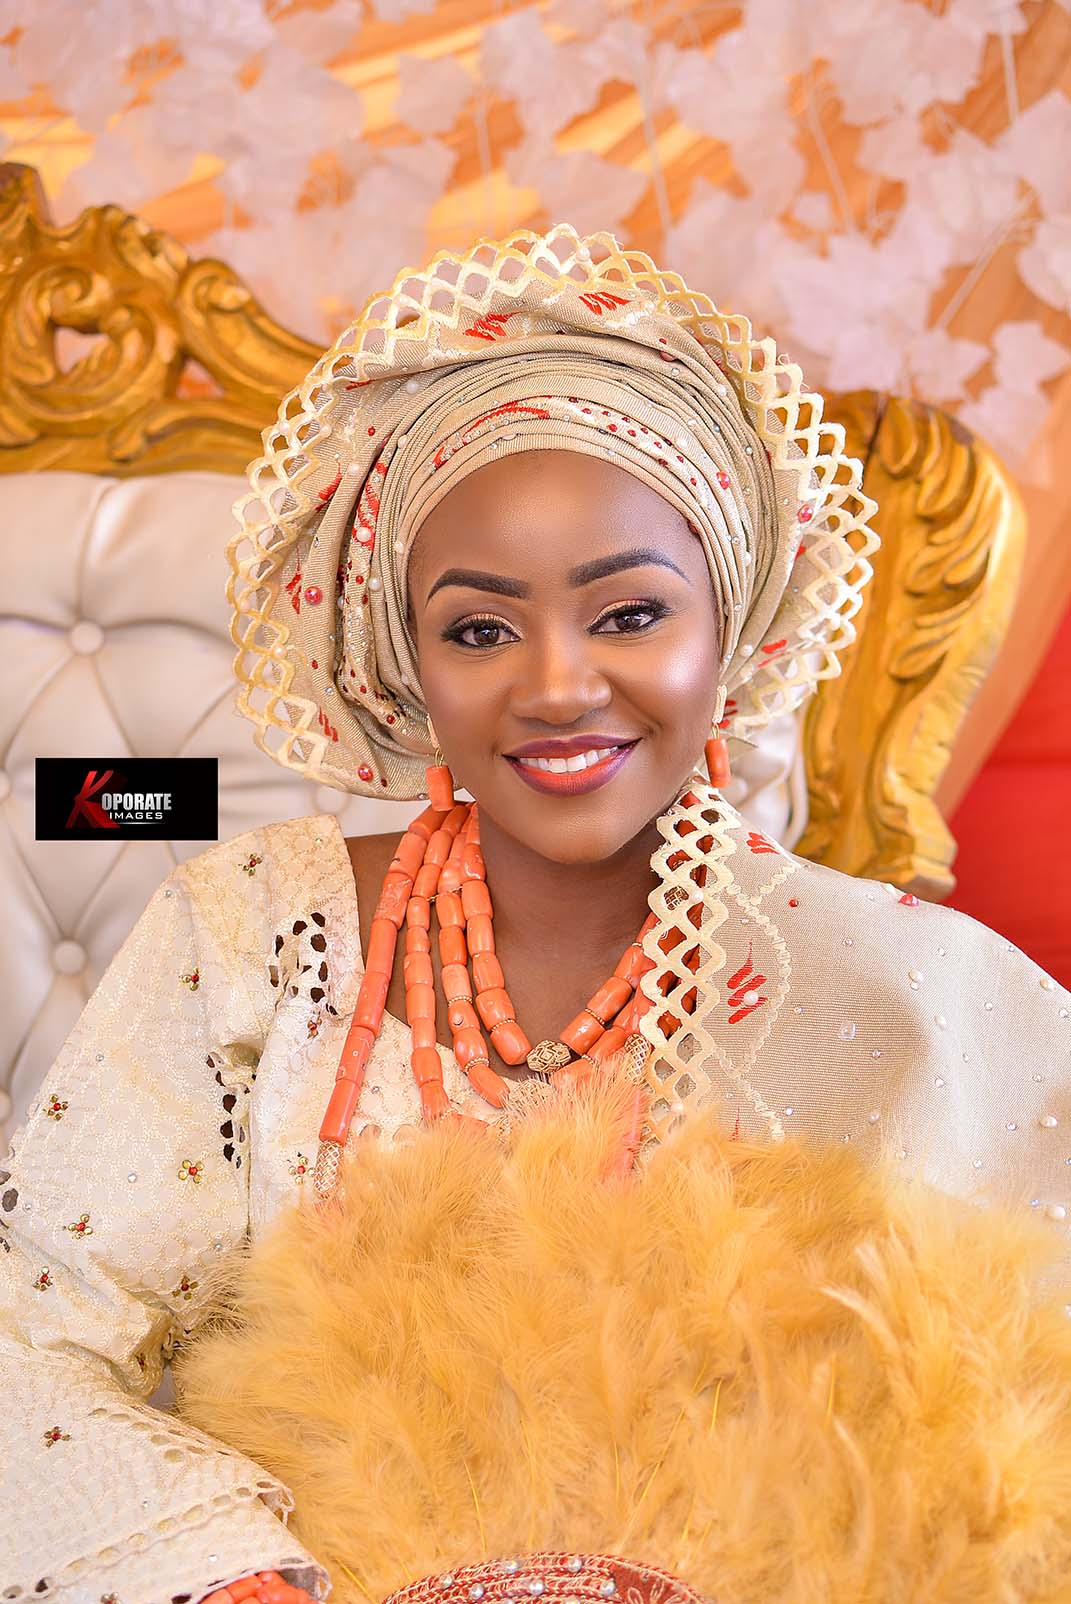 Traditional wedding wedding photos|Koporate Images|Photography & Video Coverage studio in Benin City|Professional Photographers for your events|Nigerian Wedding Photographer in Benin City|Edo Brides, benin brides